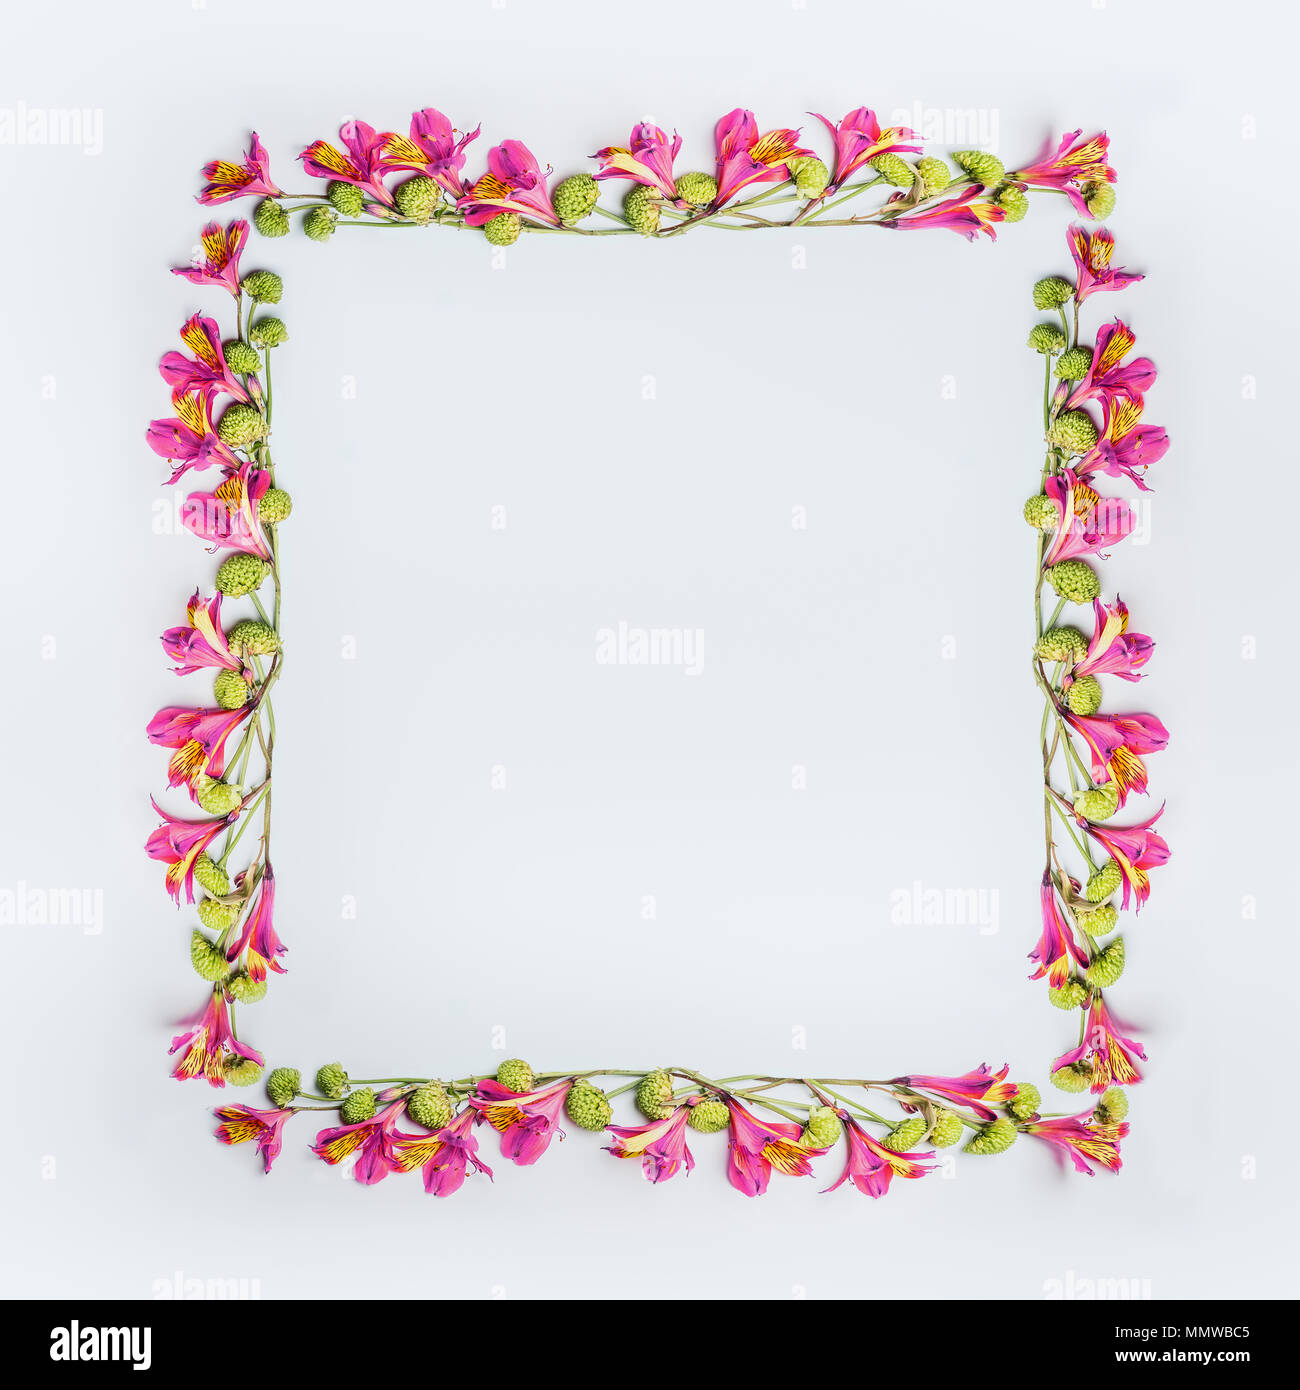 Creative Floral Design Frame Layout With Pink And Green Exotic